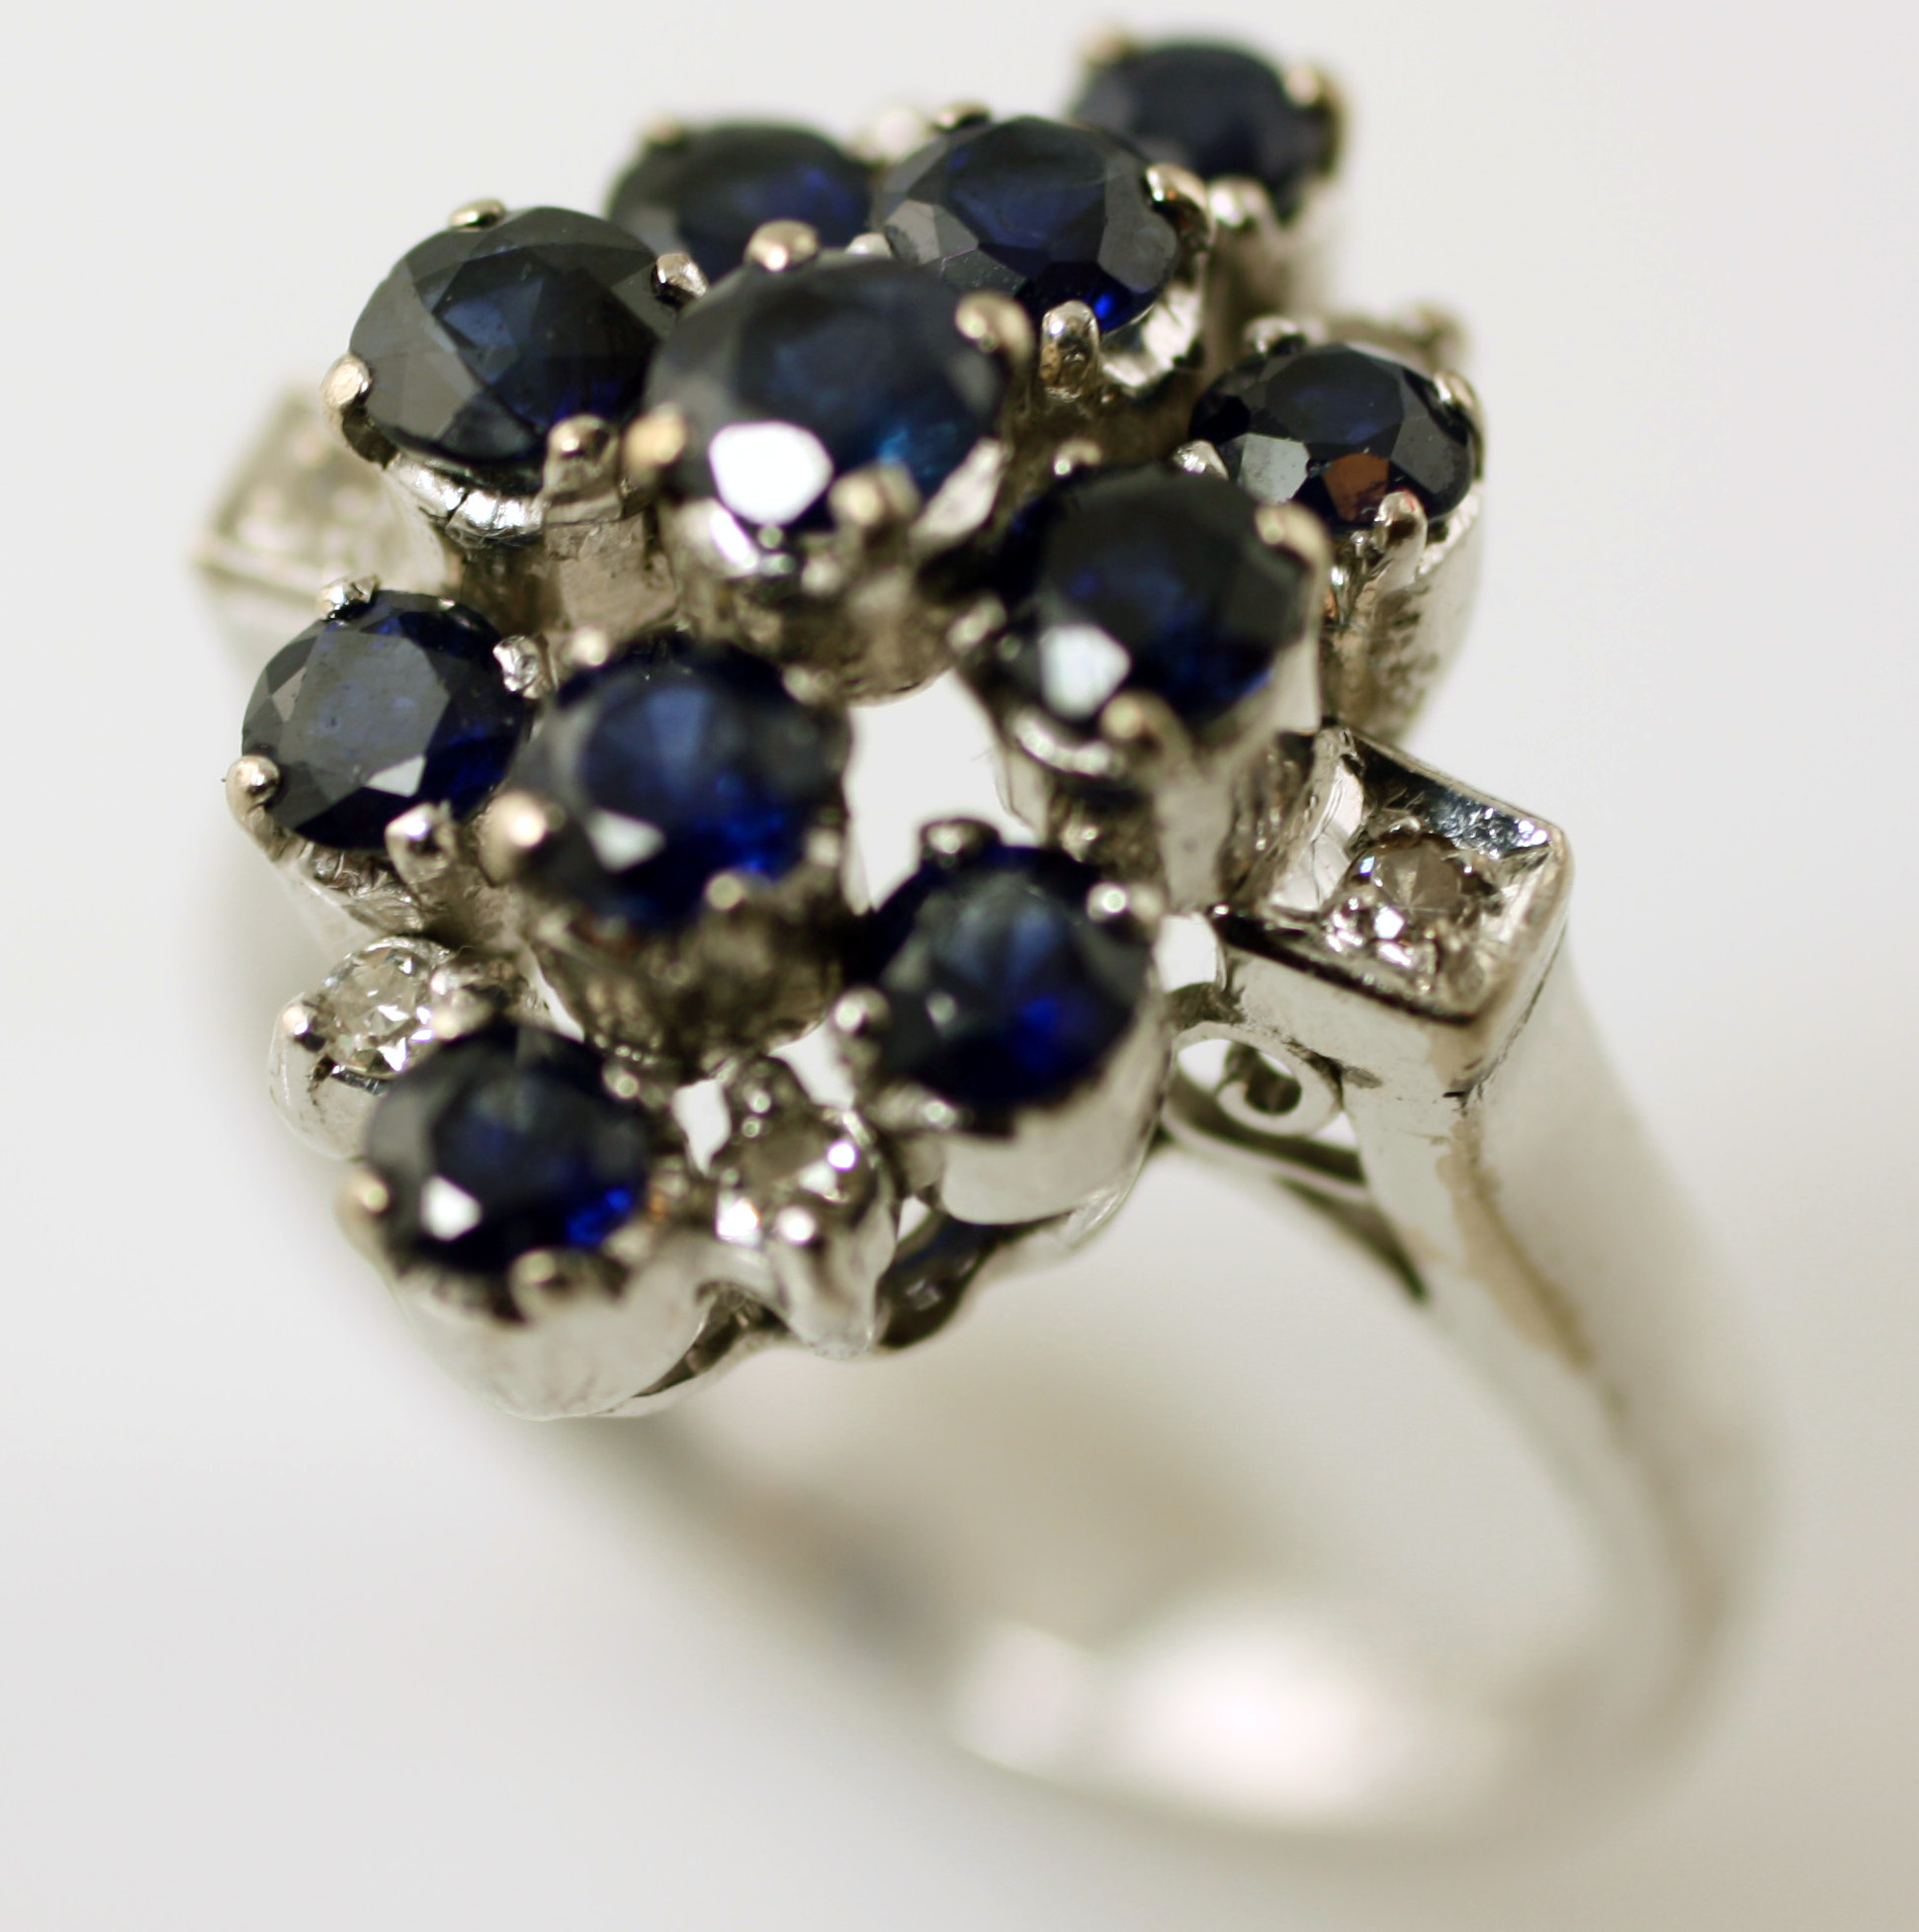 Diamond And Sapphire Ring, SKU 148-03601